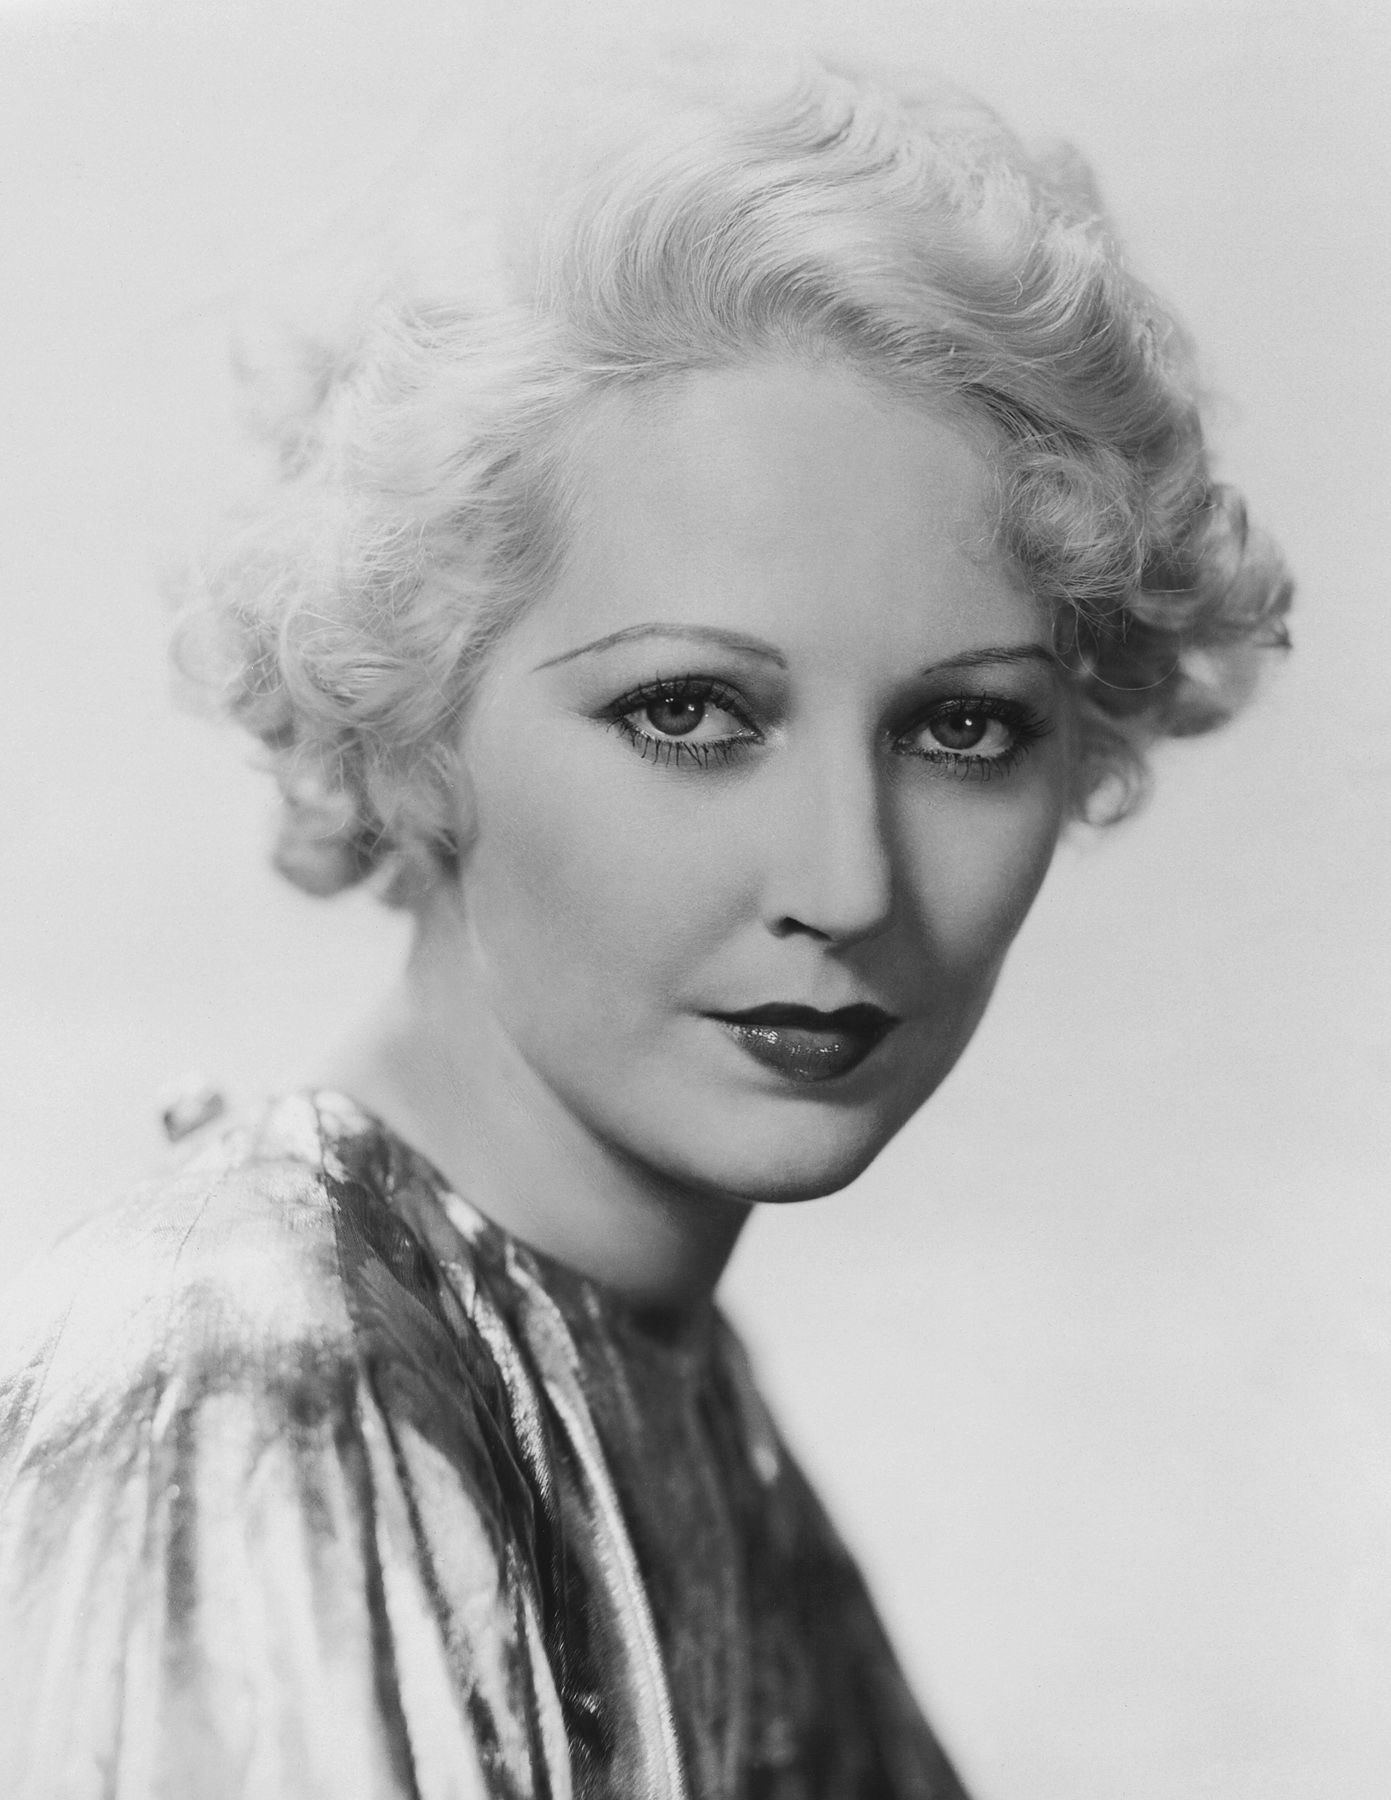 thelma todd heightthelma todd sidewalk cafe, thelma todd bio, thelma todd height, thelma todd wiki, thelma todd ghost, thelma todd imdb, thelma todd zasu pitts, thelma todd biography, thelma todd find a grave, thelma todd films, thelma todd reddit, thelma todd stairs, thelma todd death, thelma todd cafe, thelma todd cause of death, thelma todd youtube, thelma todd muerte, thelma todd autopsy, thelma todd death photos, thelma todd patsy kelly